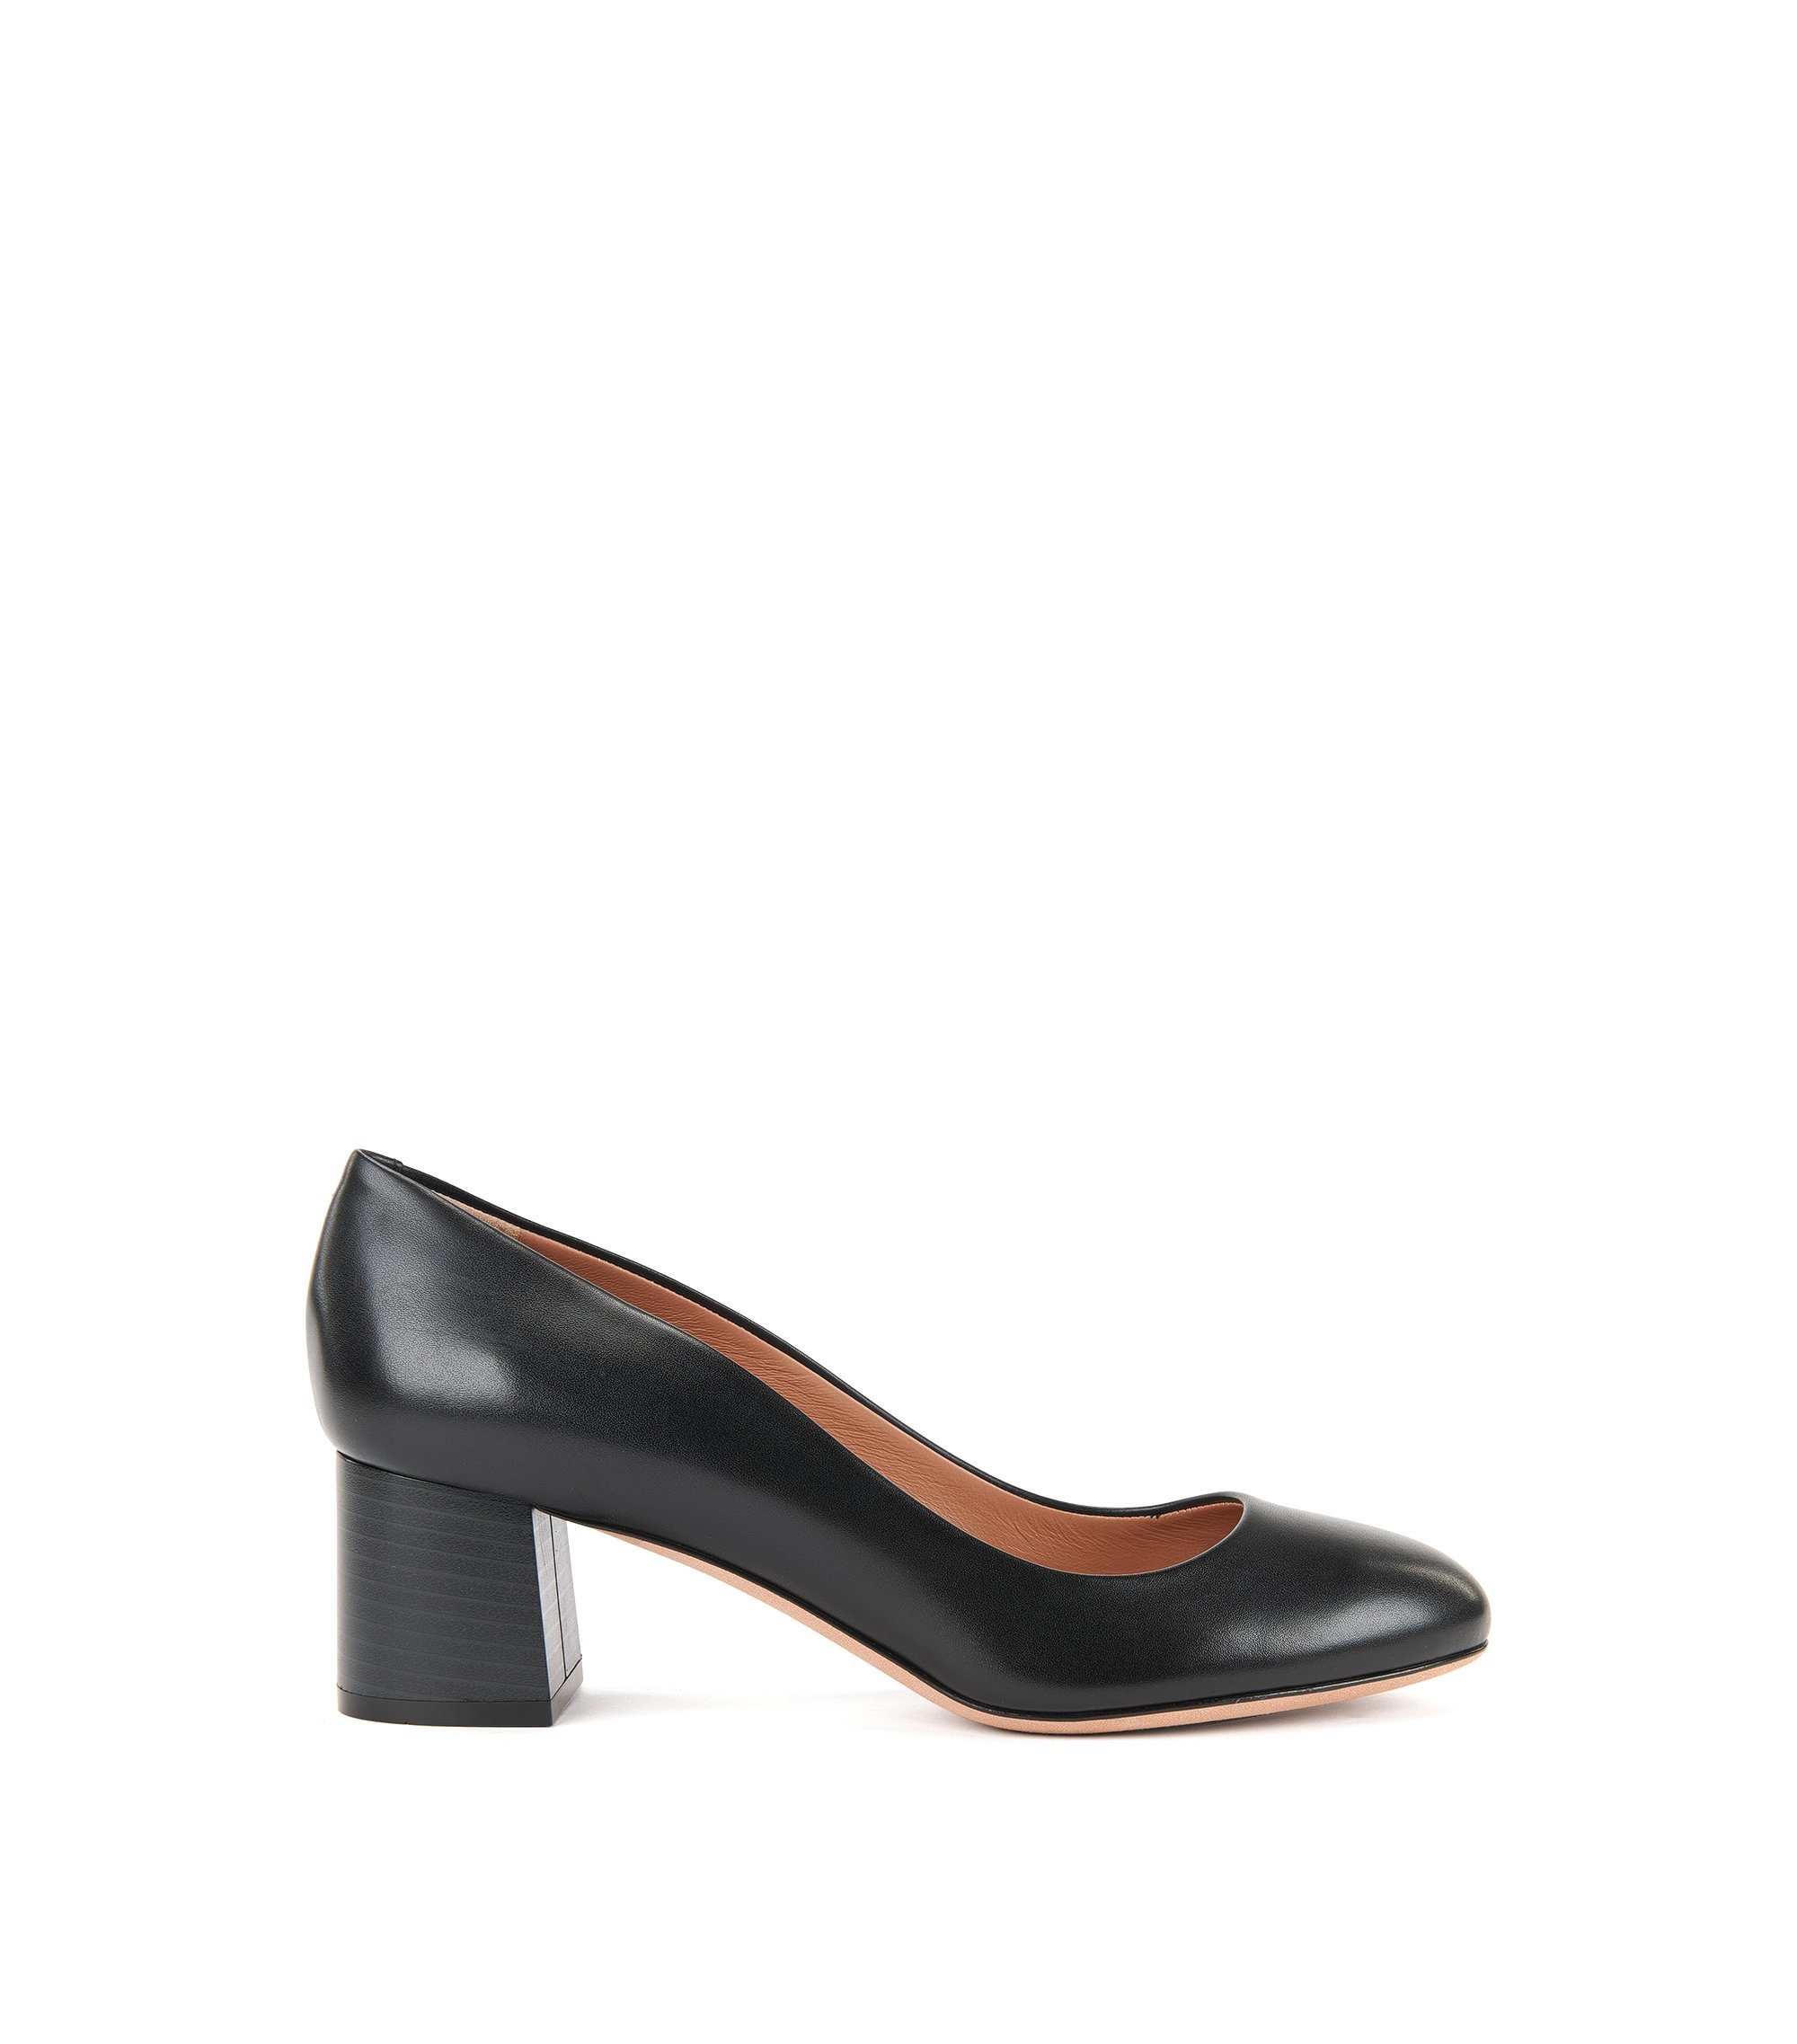 Leather Low-Heel Pump | Farah, Black